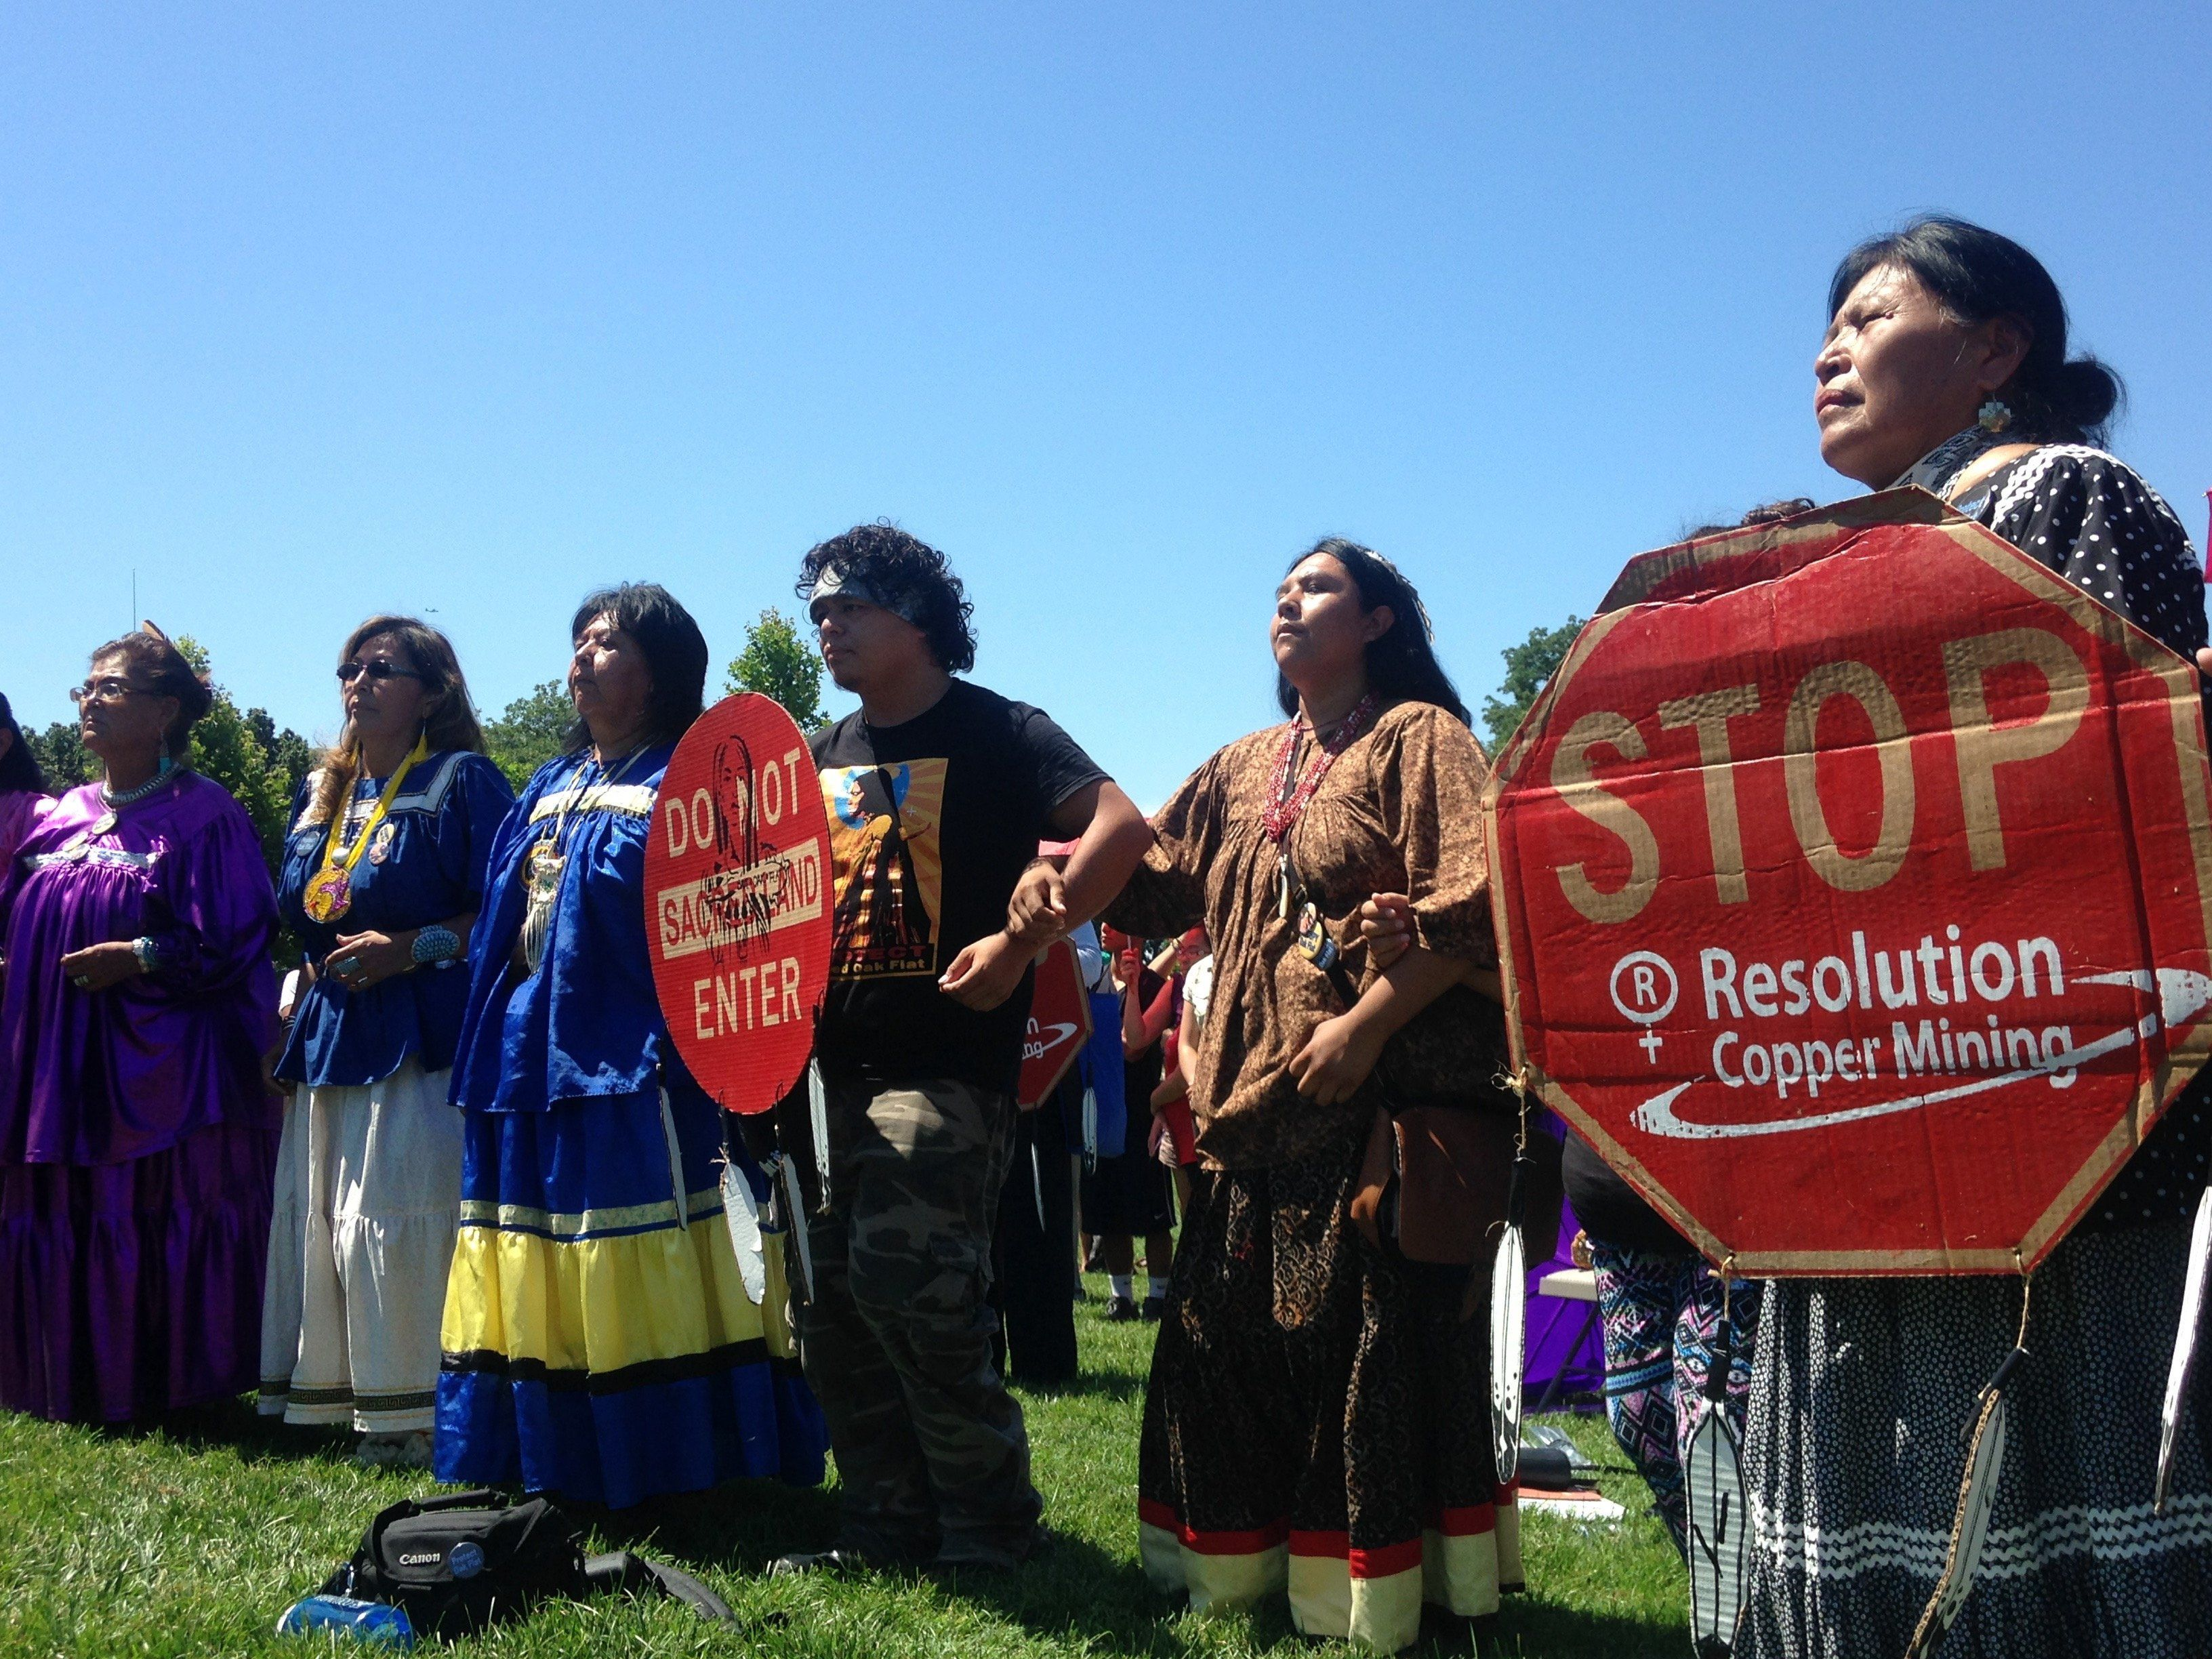 Protestors at Apache Stronghold Rally in Washington, D.C. on July 22, 2015.